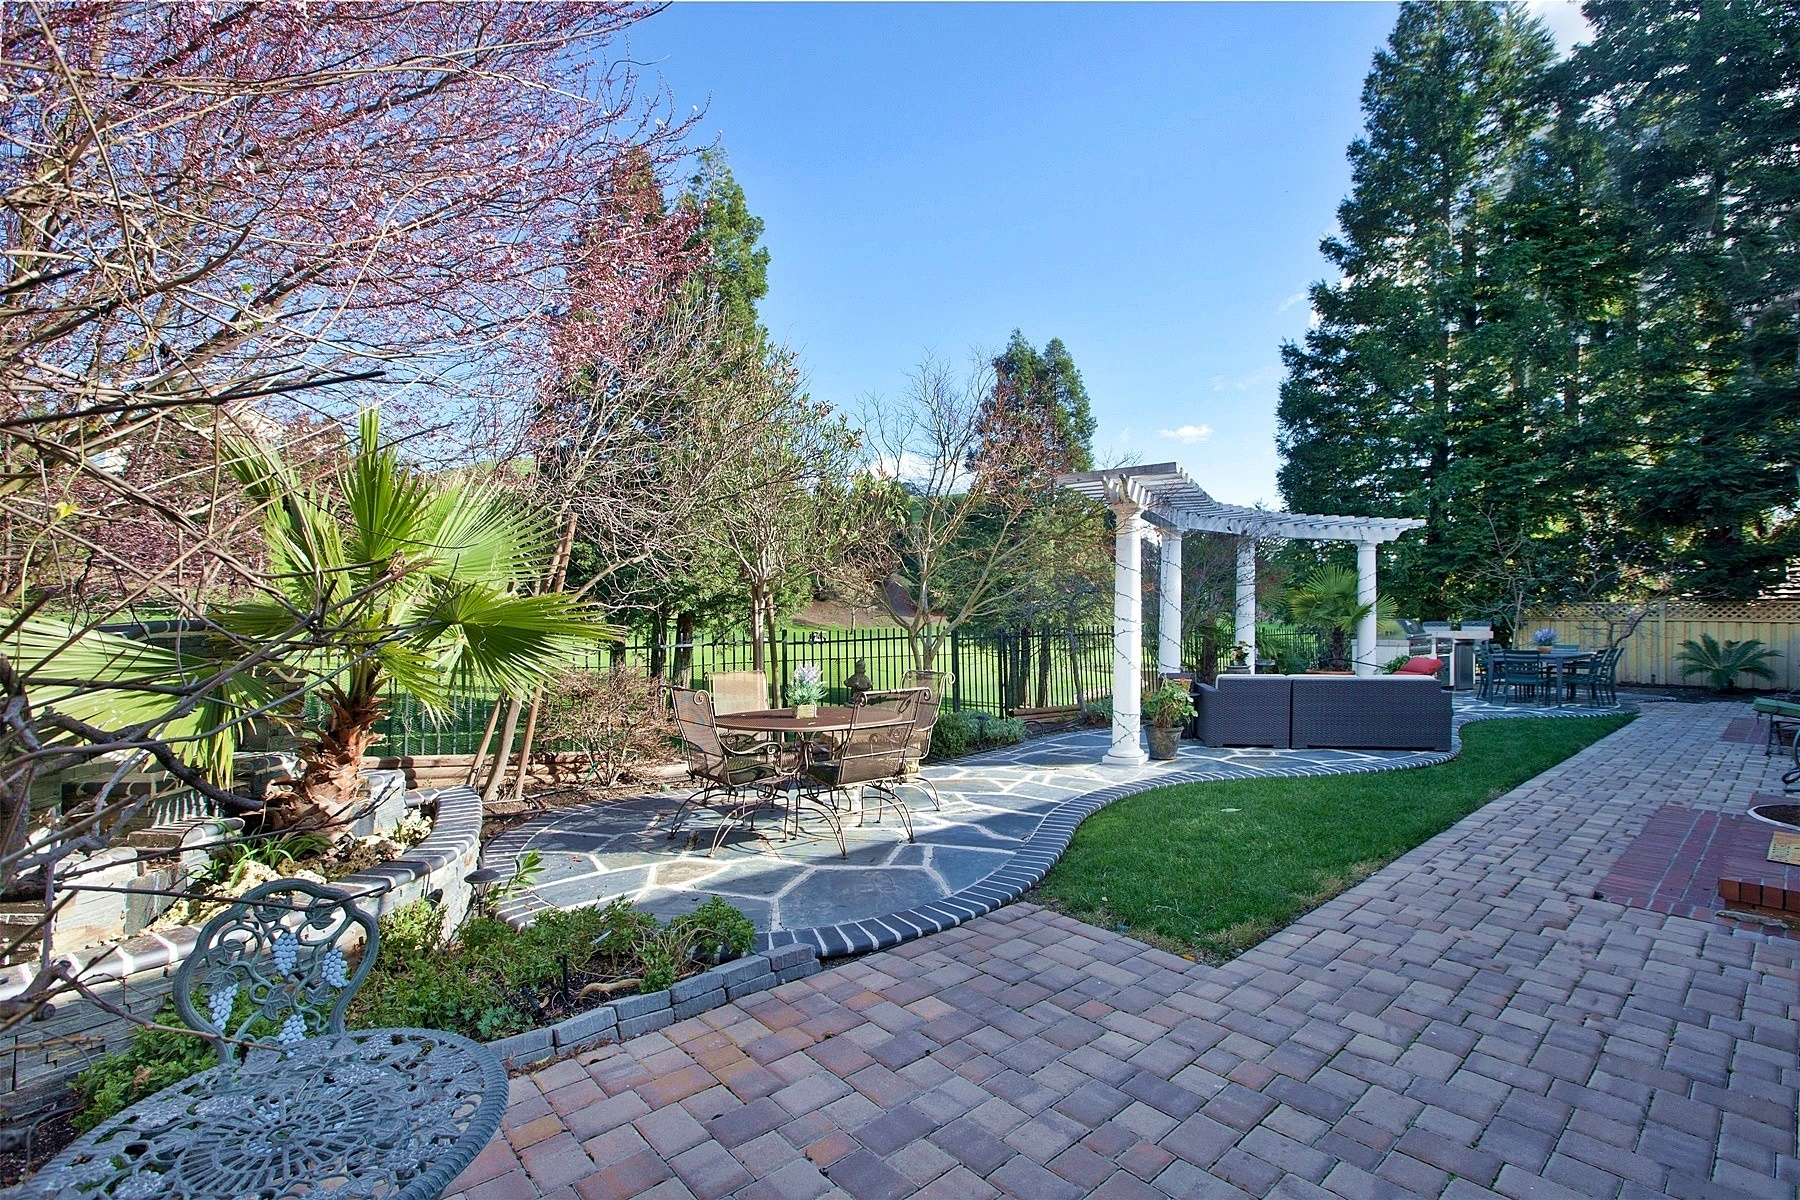 Maison unifamiliale pour l Vente à Exceptional Quality With A True Contemporary Feel 3215 Blackhawk Meadow Drive Danville, Californie, 94506 États-Unis